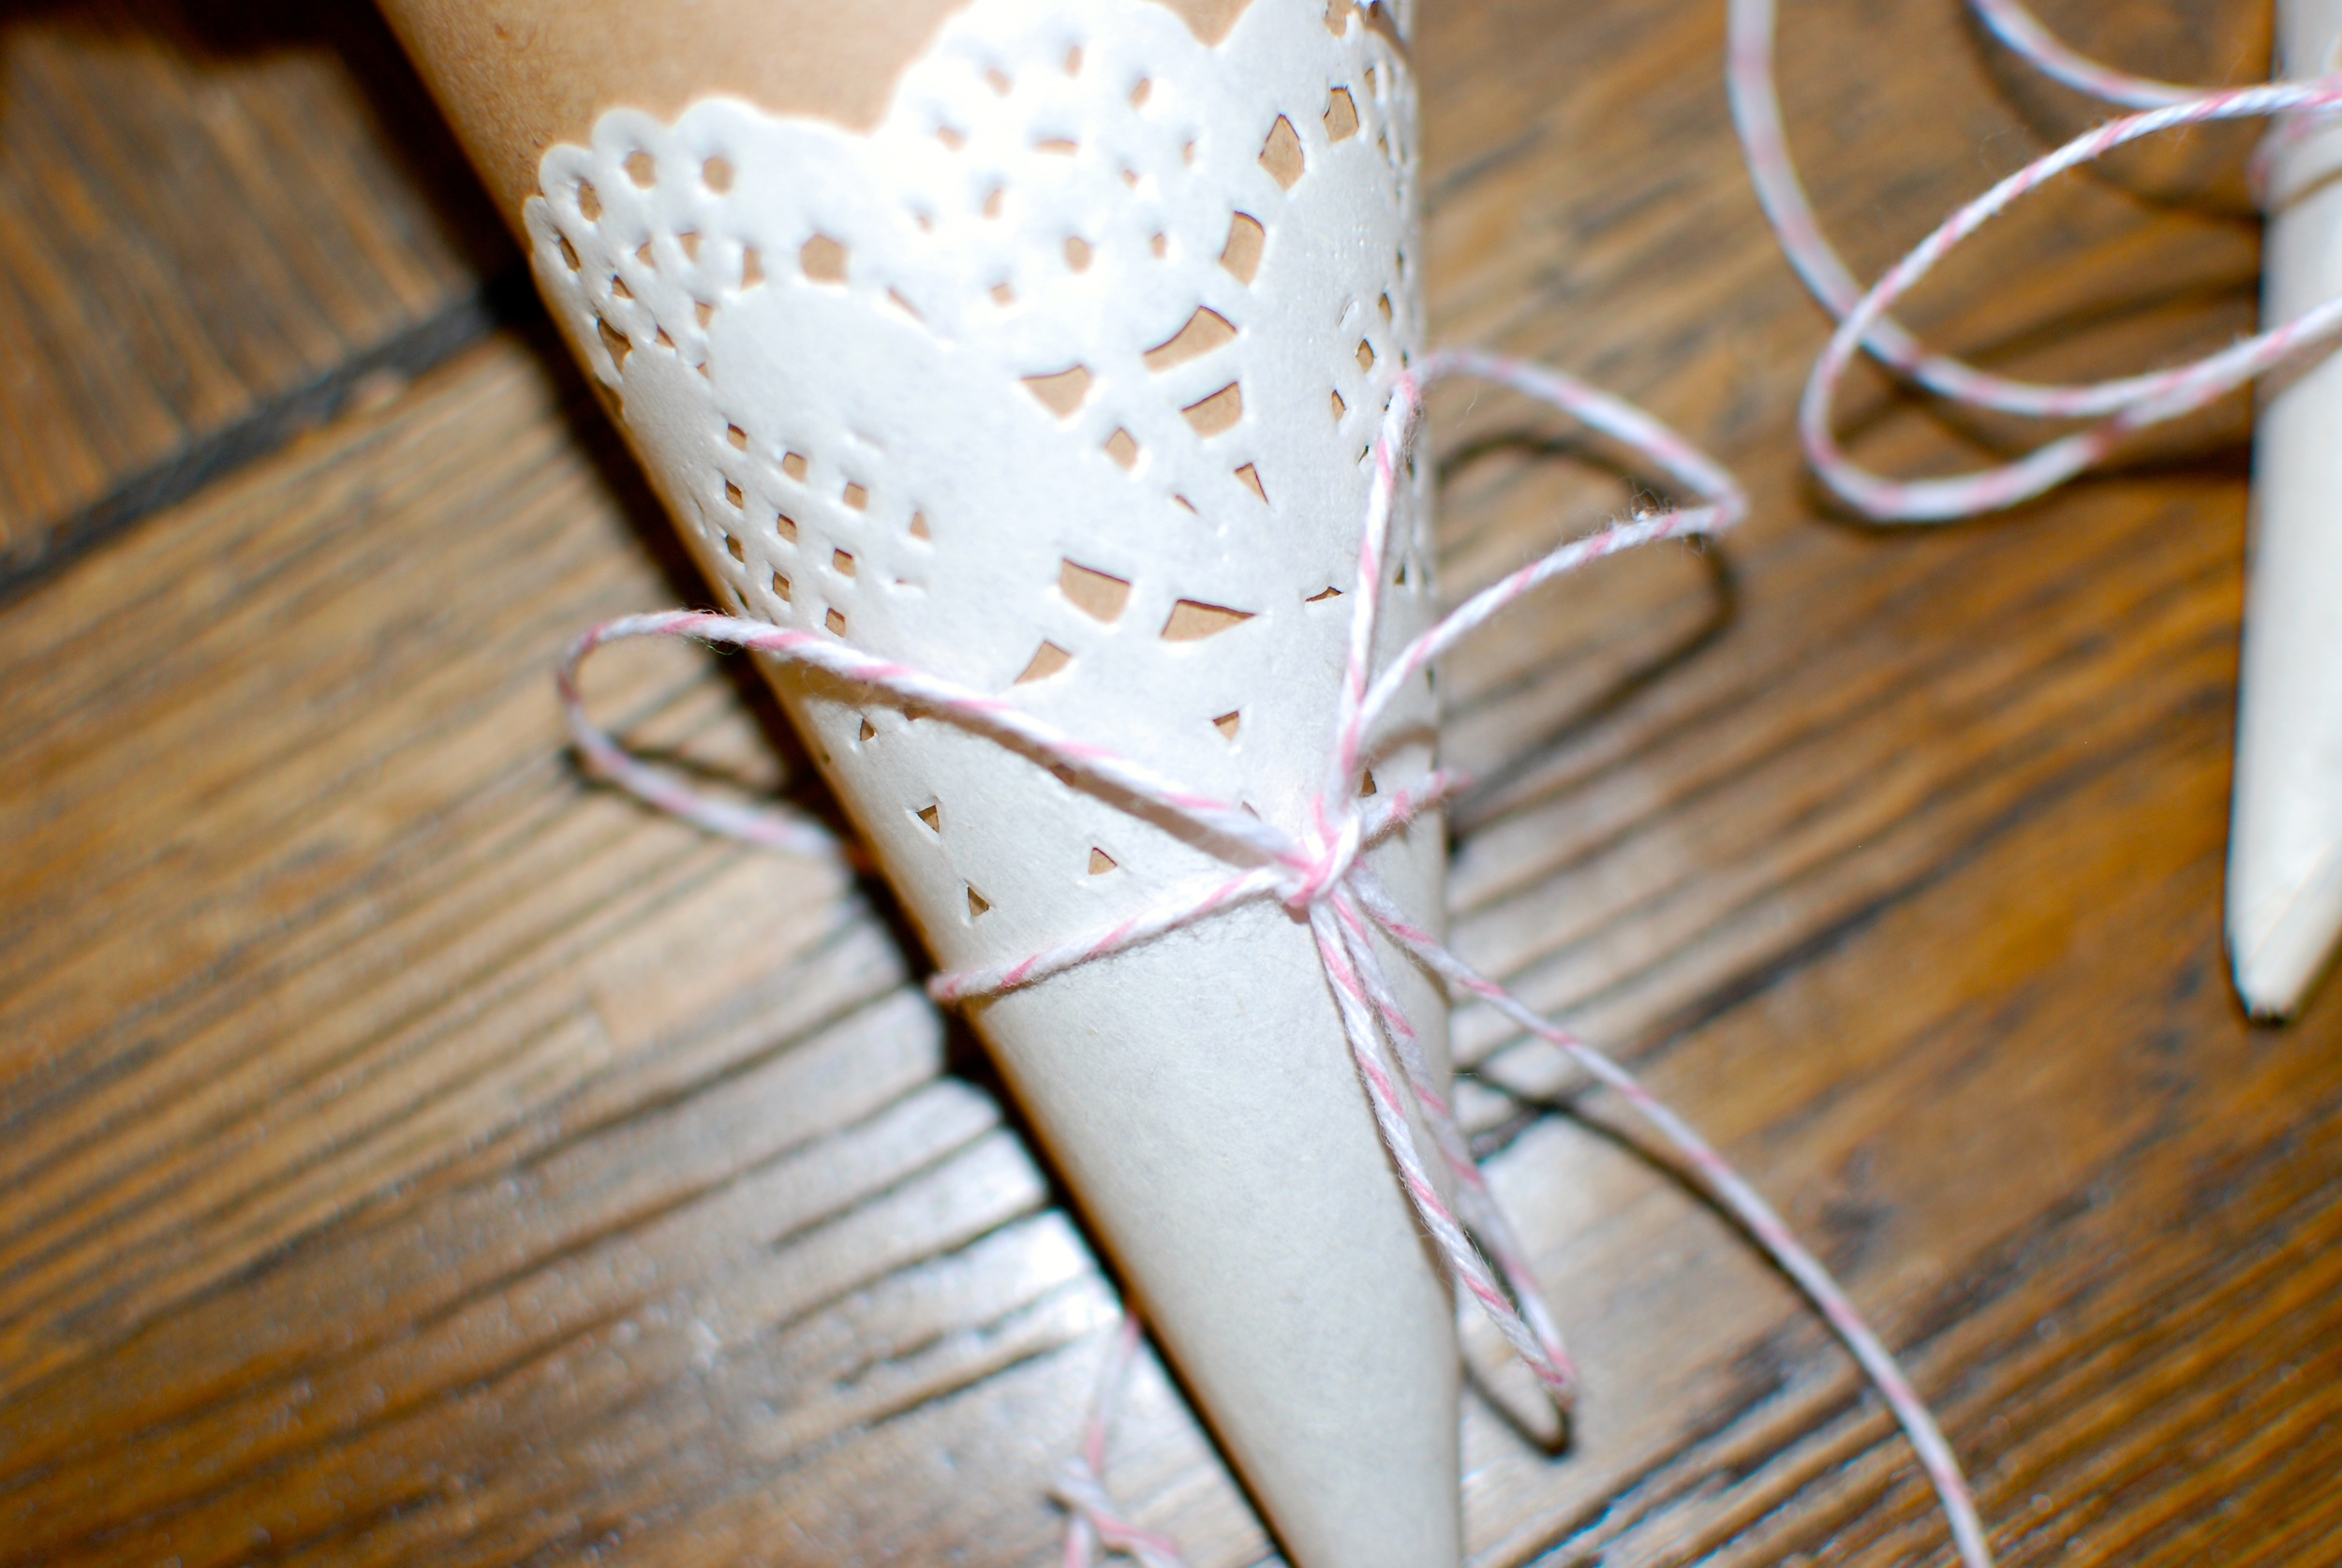 Pretty it up with some delicate bakers twine or ribbon